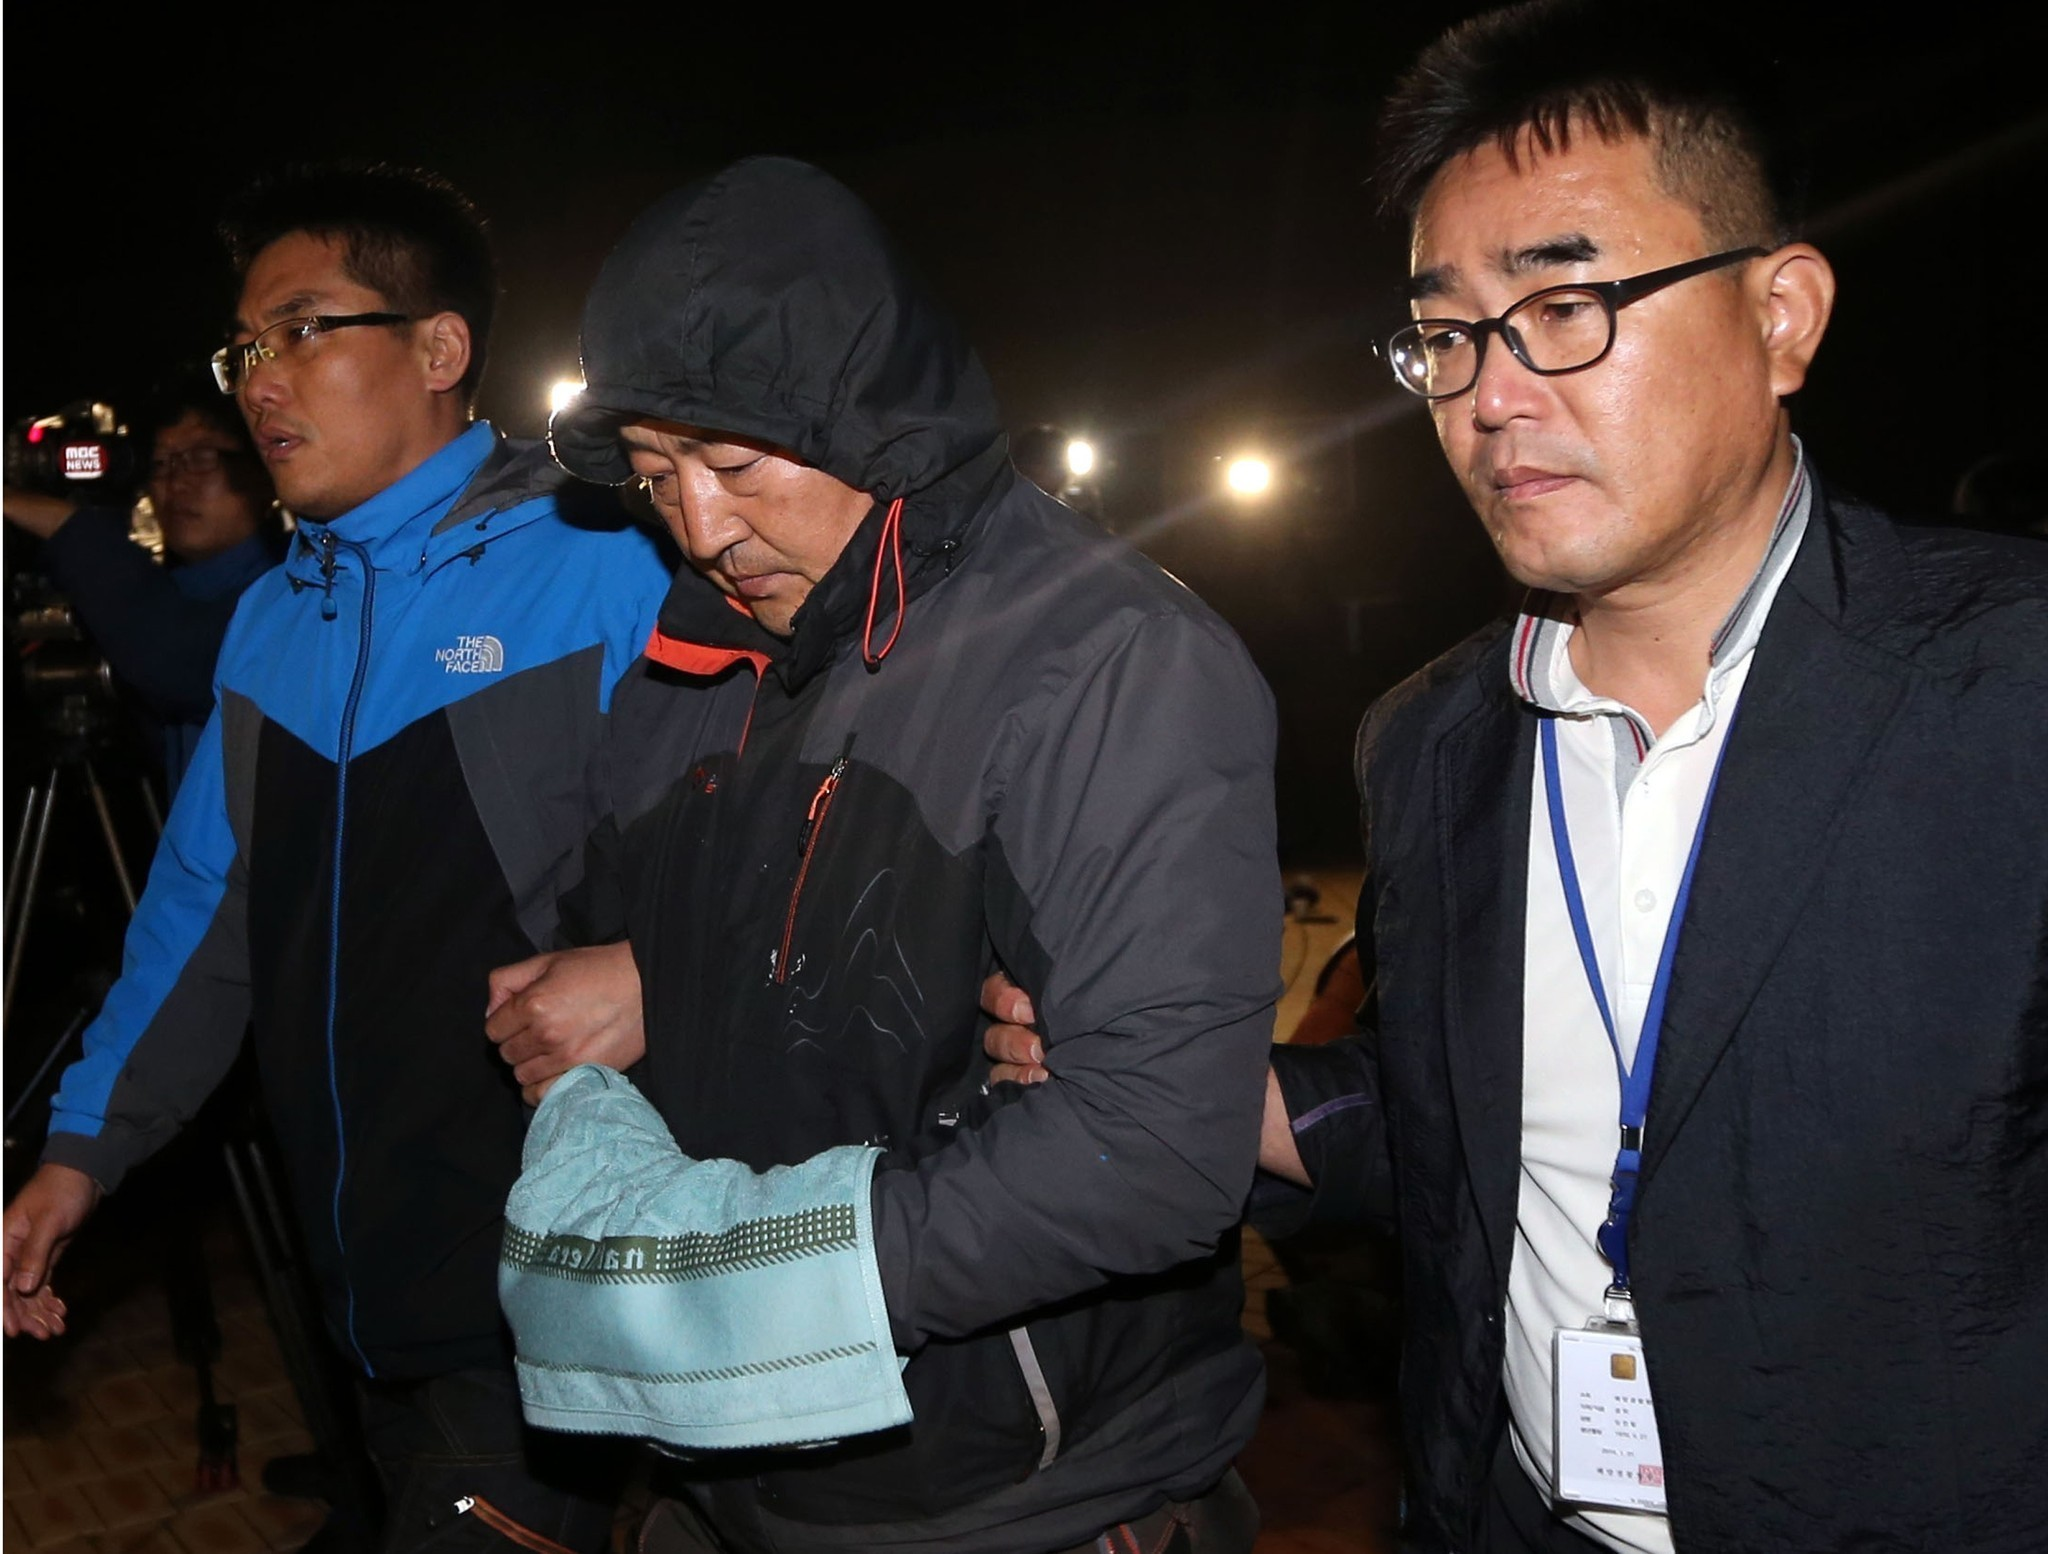 La fg wn korea ferry captain arrested 20140418